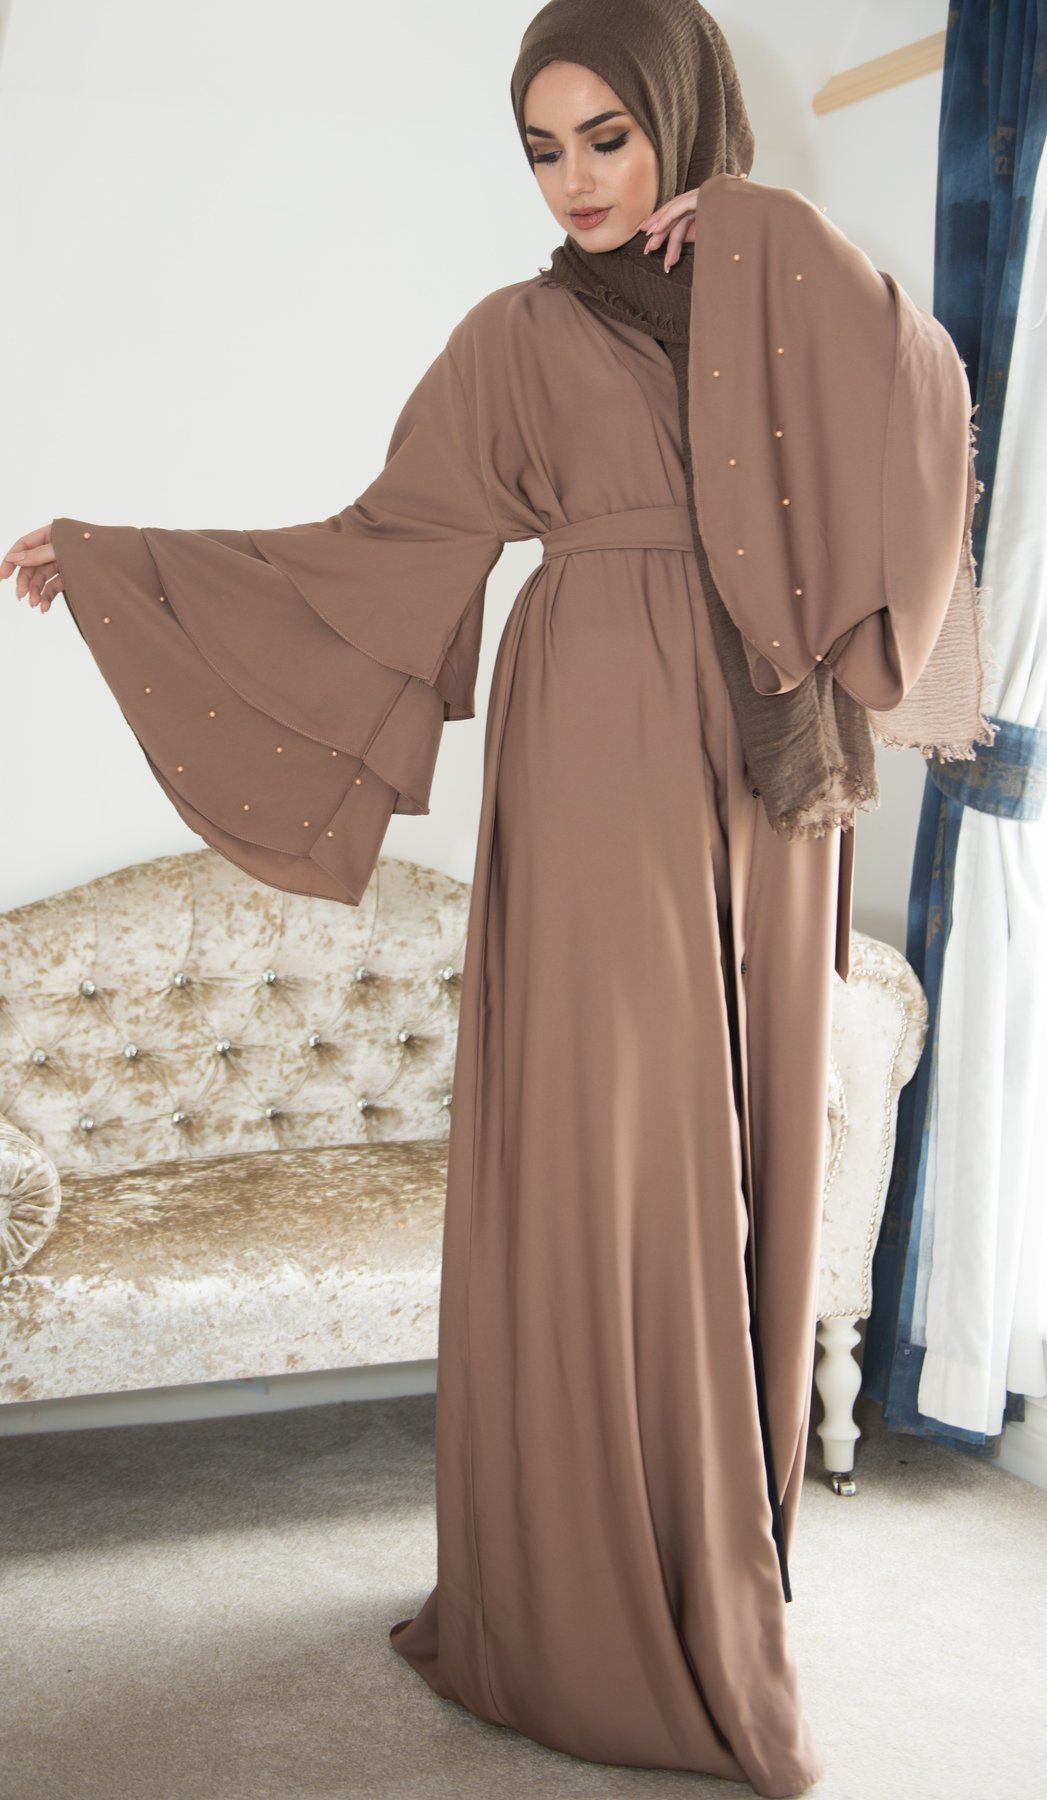 Pearl Bell Abaya Ready To Dispatch Buy This Essential For Every Modest Wardrobe Our Closed Abayas Muslim Fashion Dress Muslim Fashion Outfits Abaya Designs